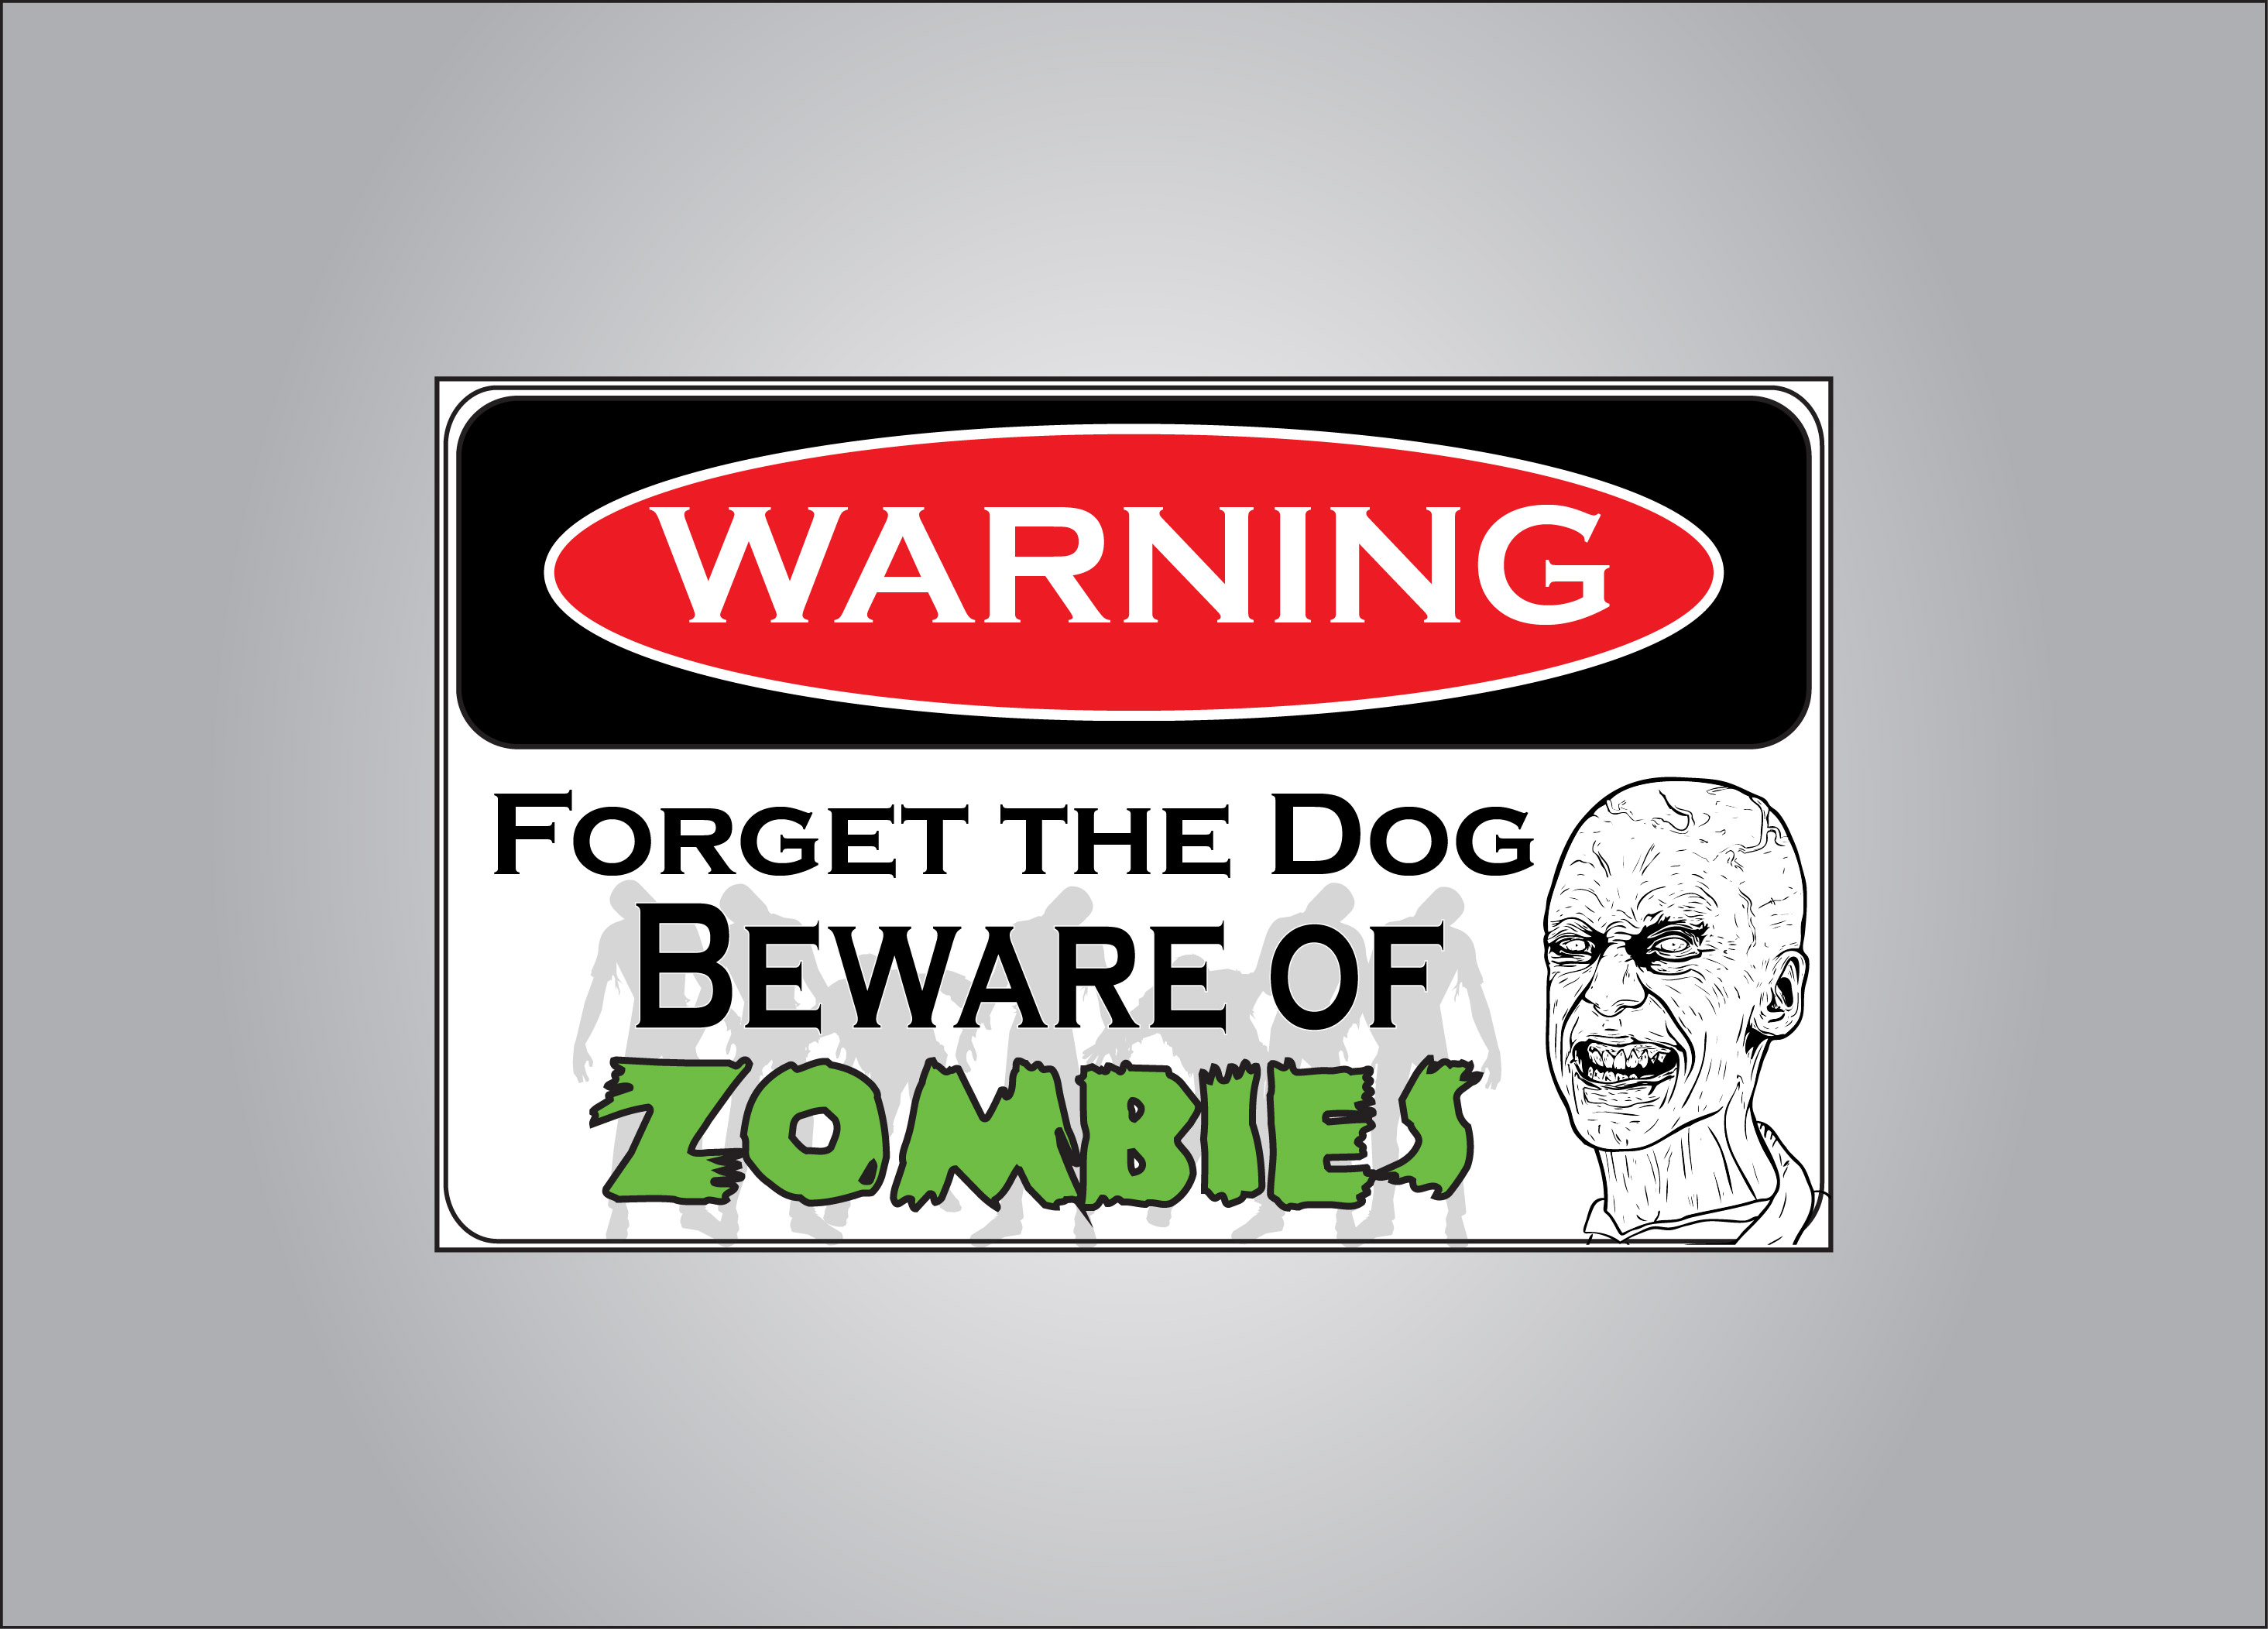 Attack zombies are more fierce than attack dogs any day.